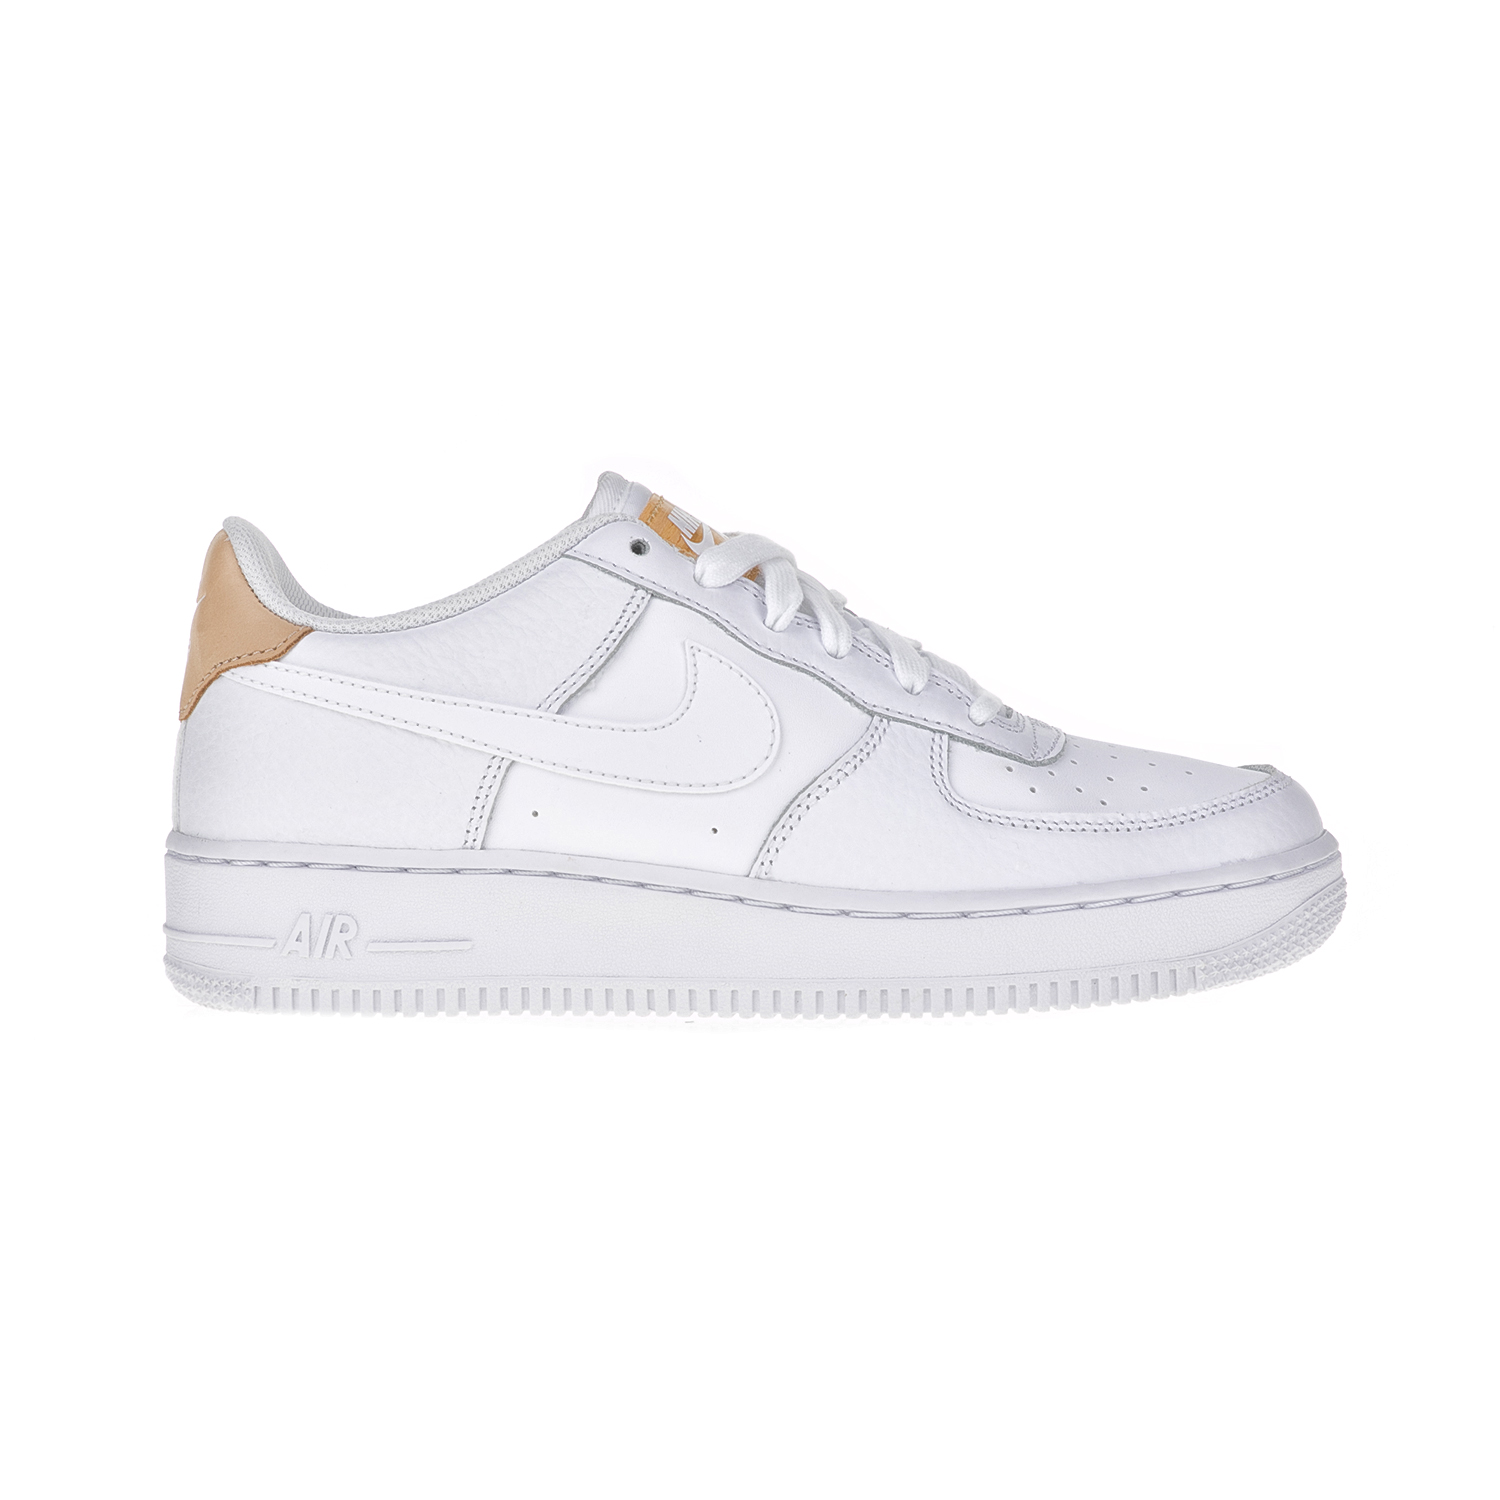 NIKE - Παιδικά παπούτσια AIR FORCE 1 LV8 (GS) λευκά